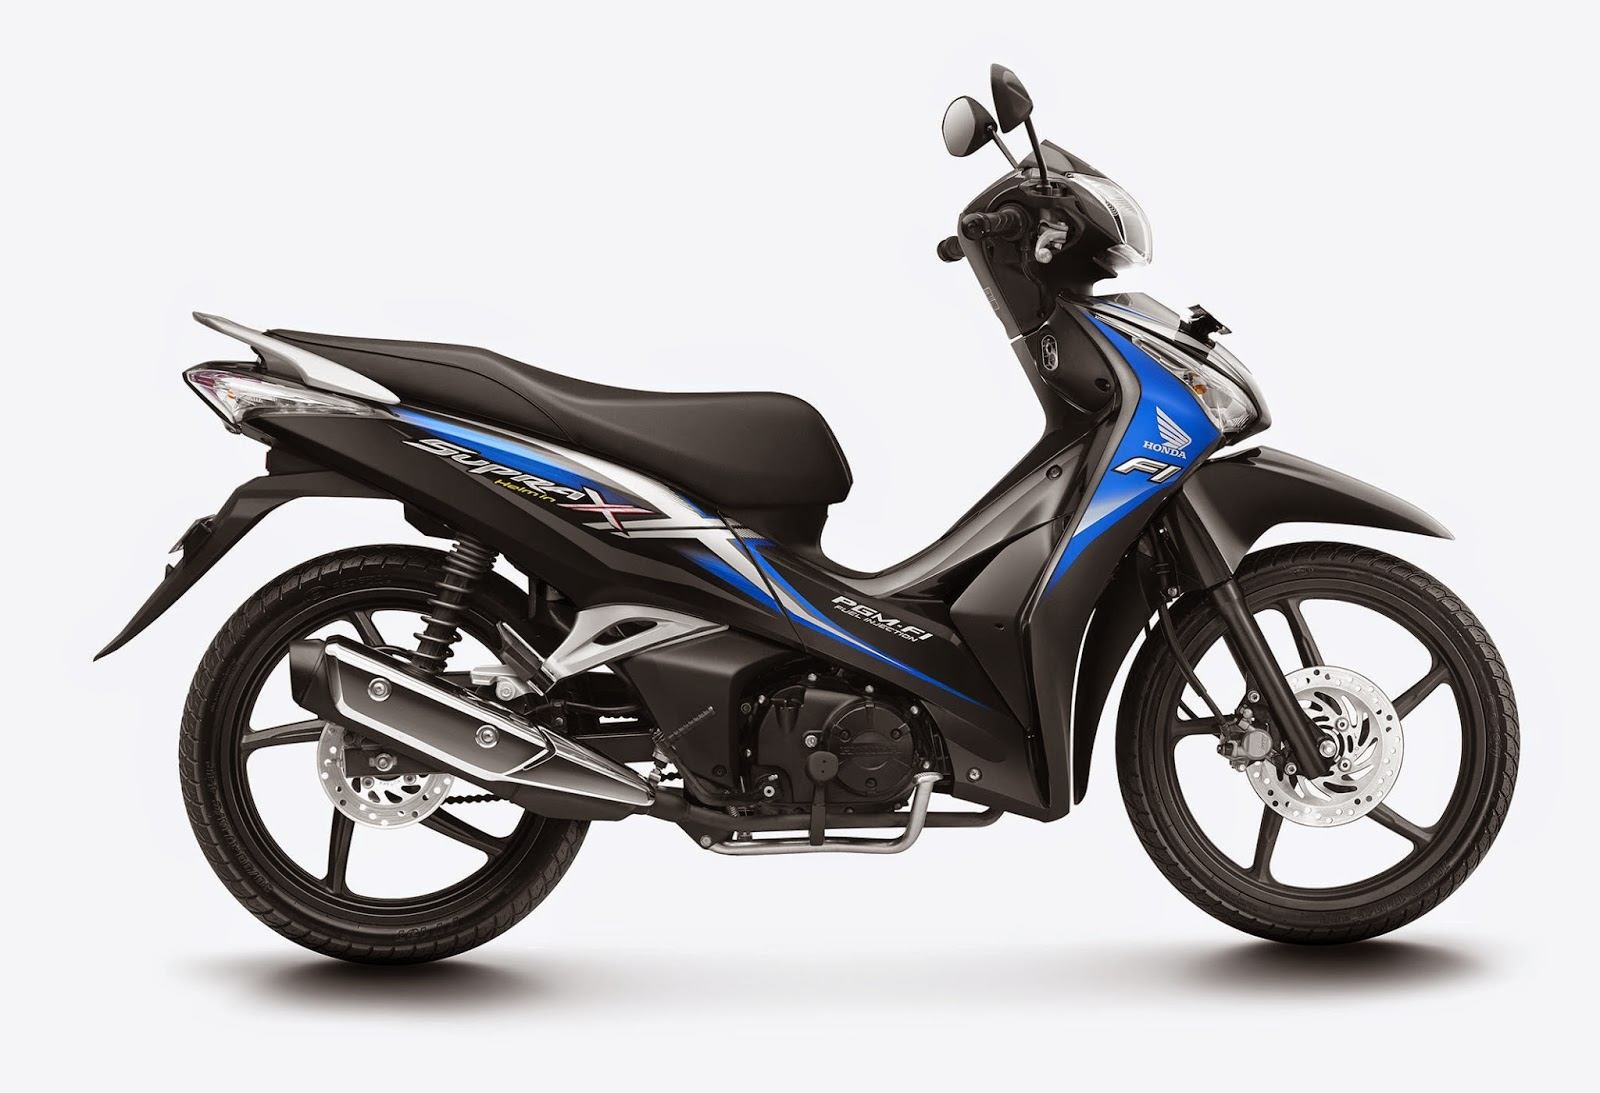 honda Supra X 125 Helm in PGM-FI Glorious Blue